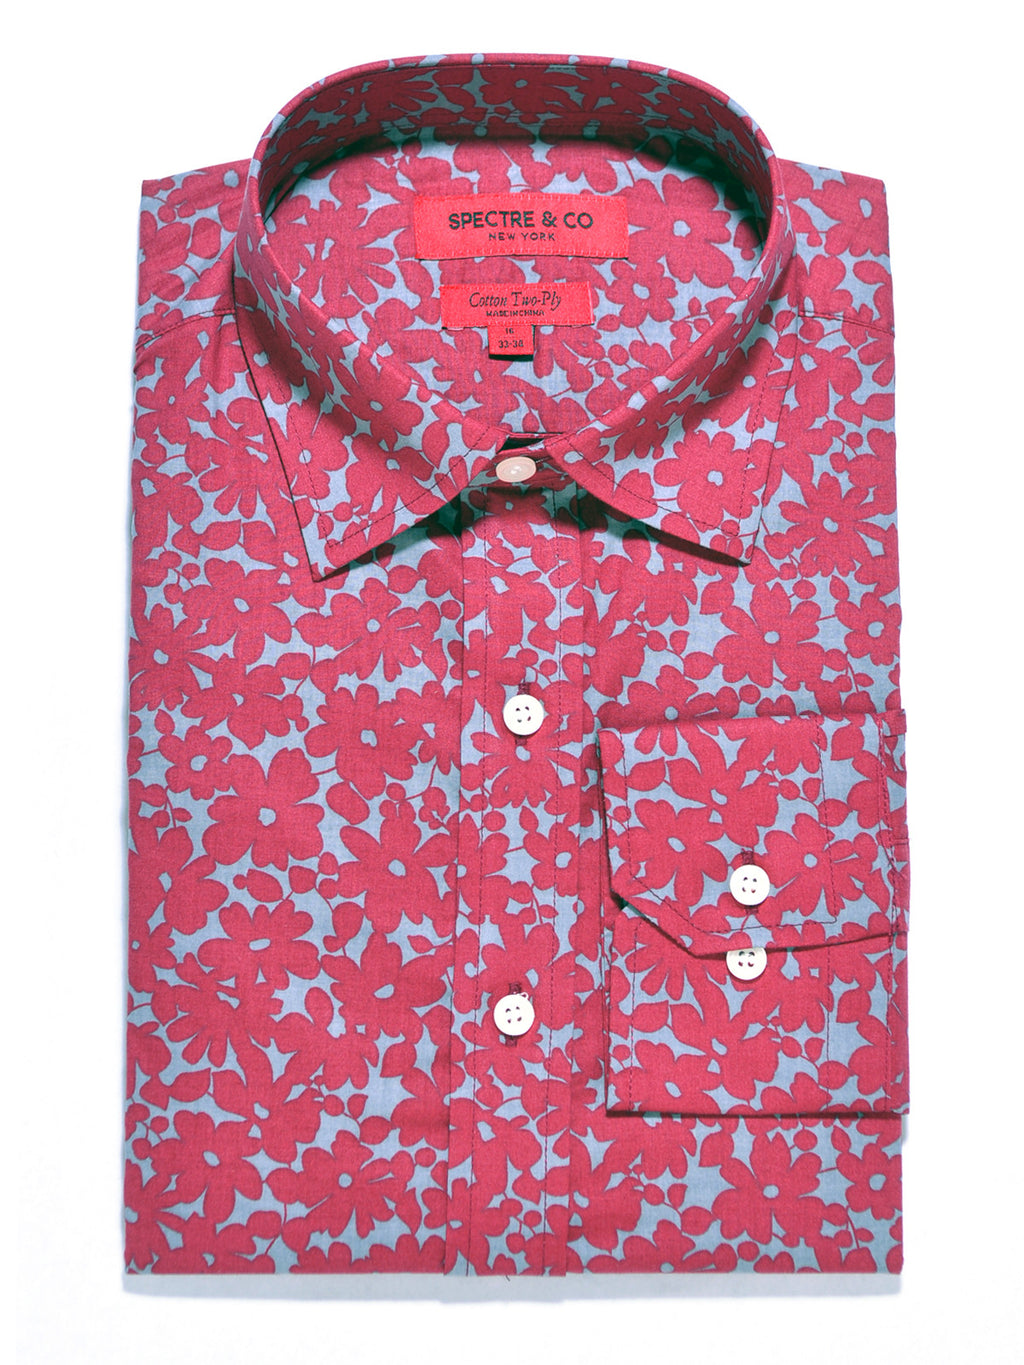 Grey and Red Floral Semi-Spread Dress Shirt